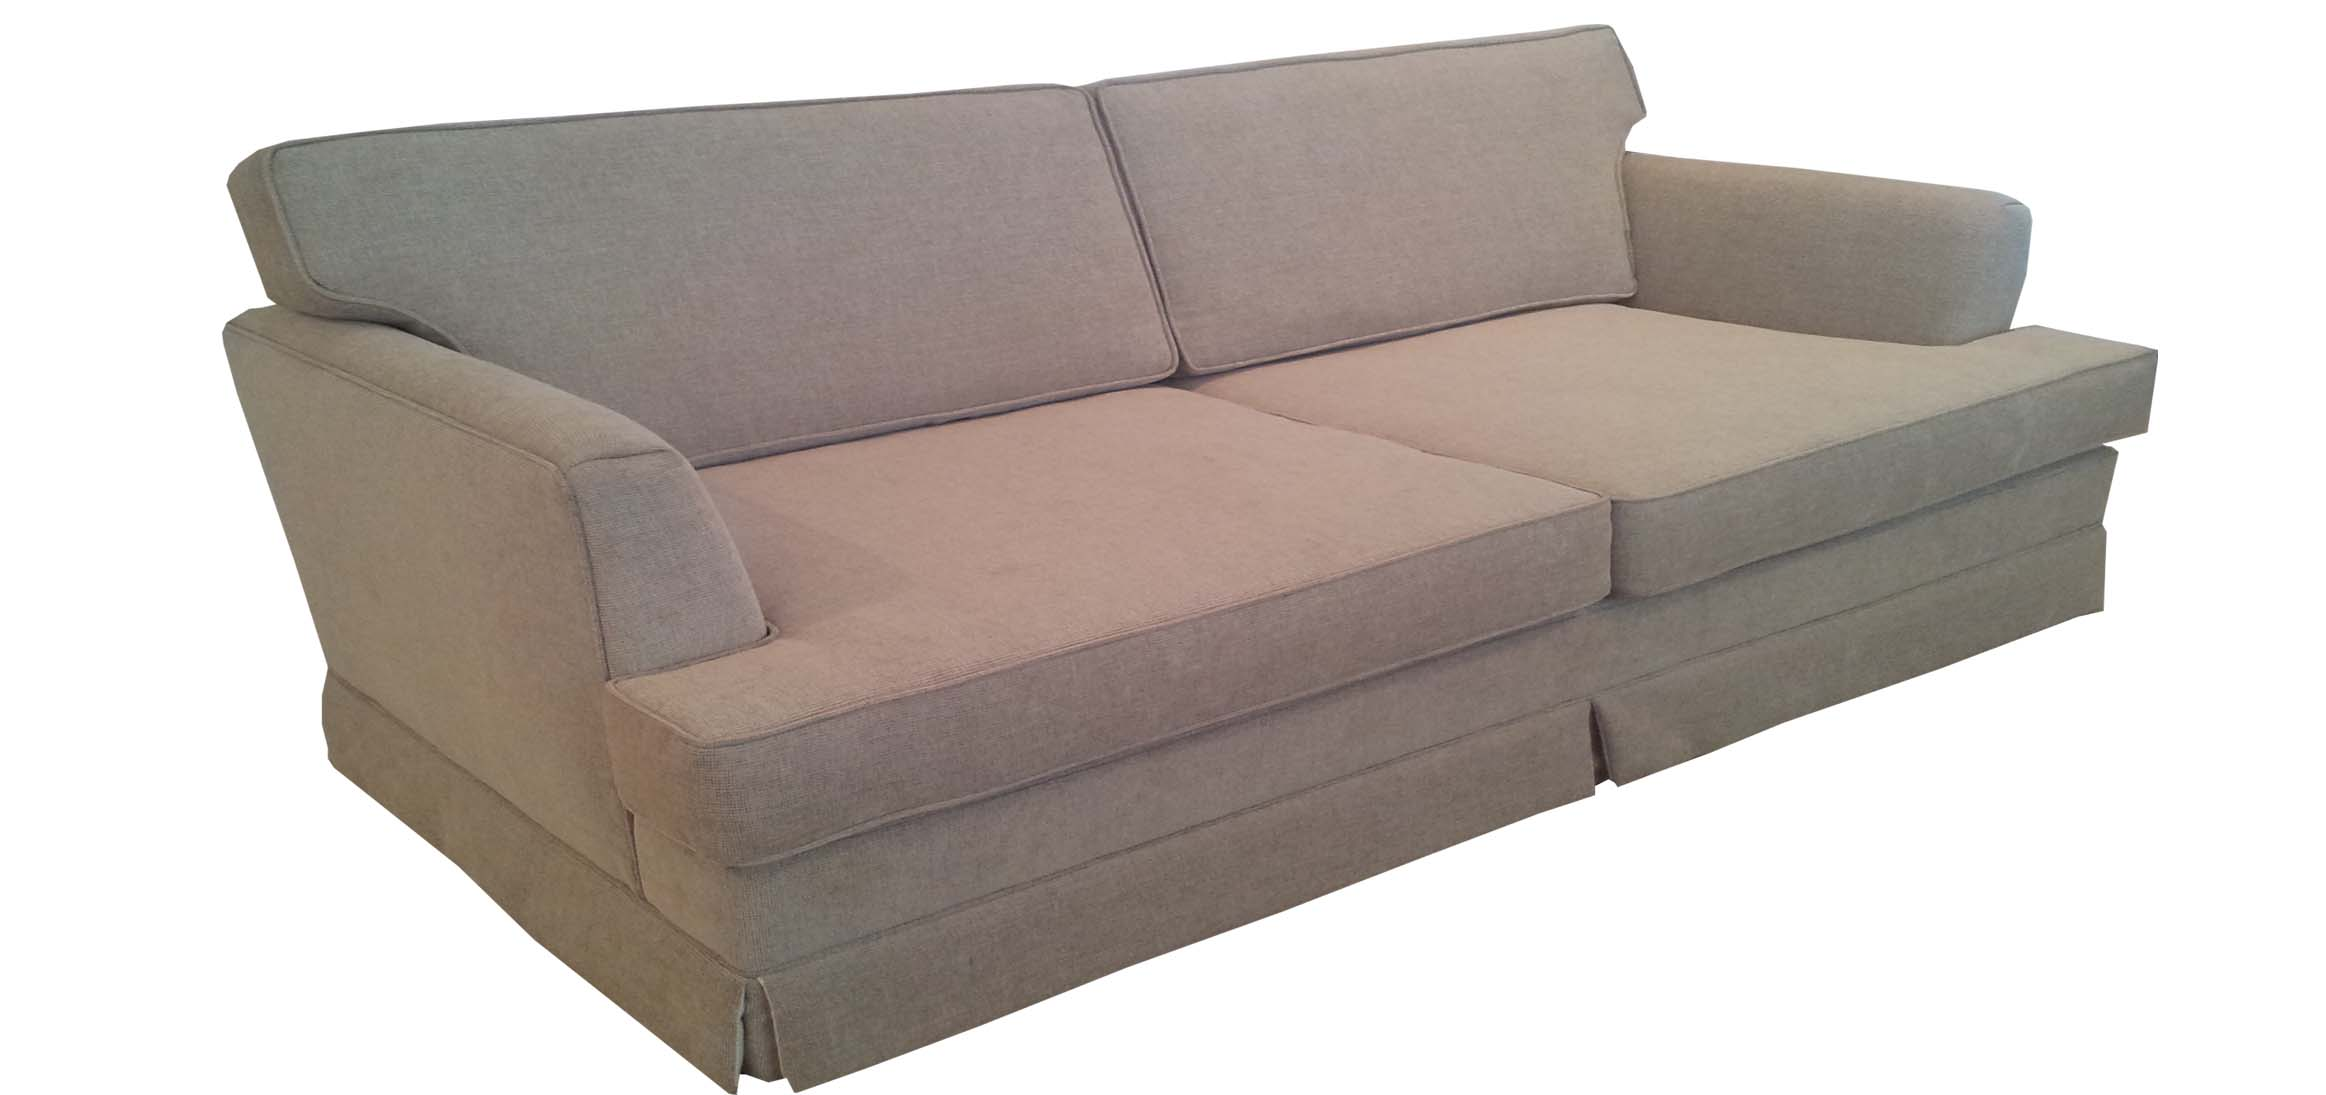 sofa couch brisbane millwall oxford sofascore first edition upholstery custom made sofas